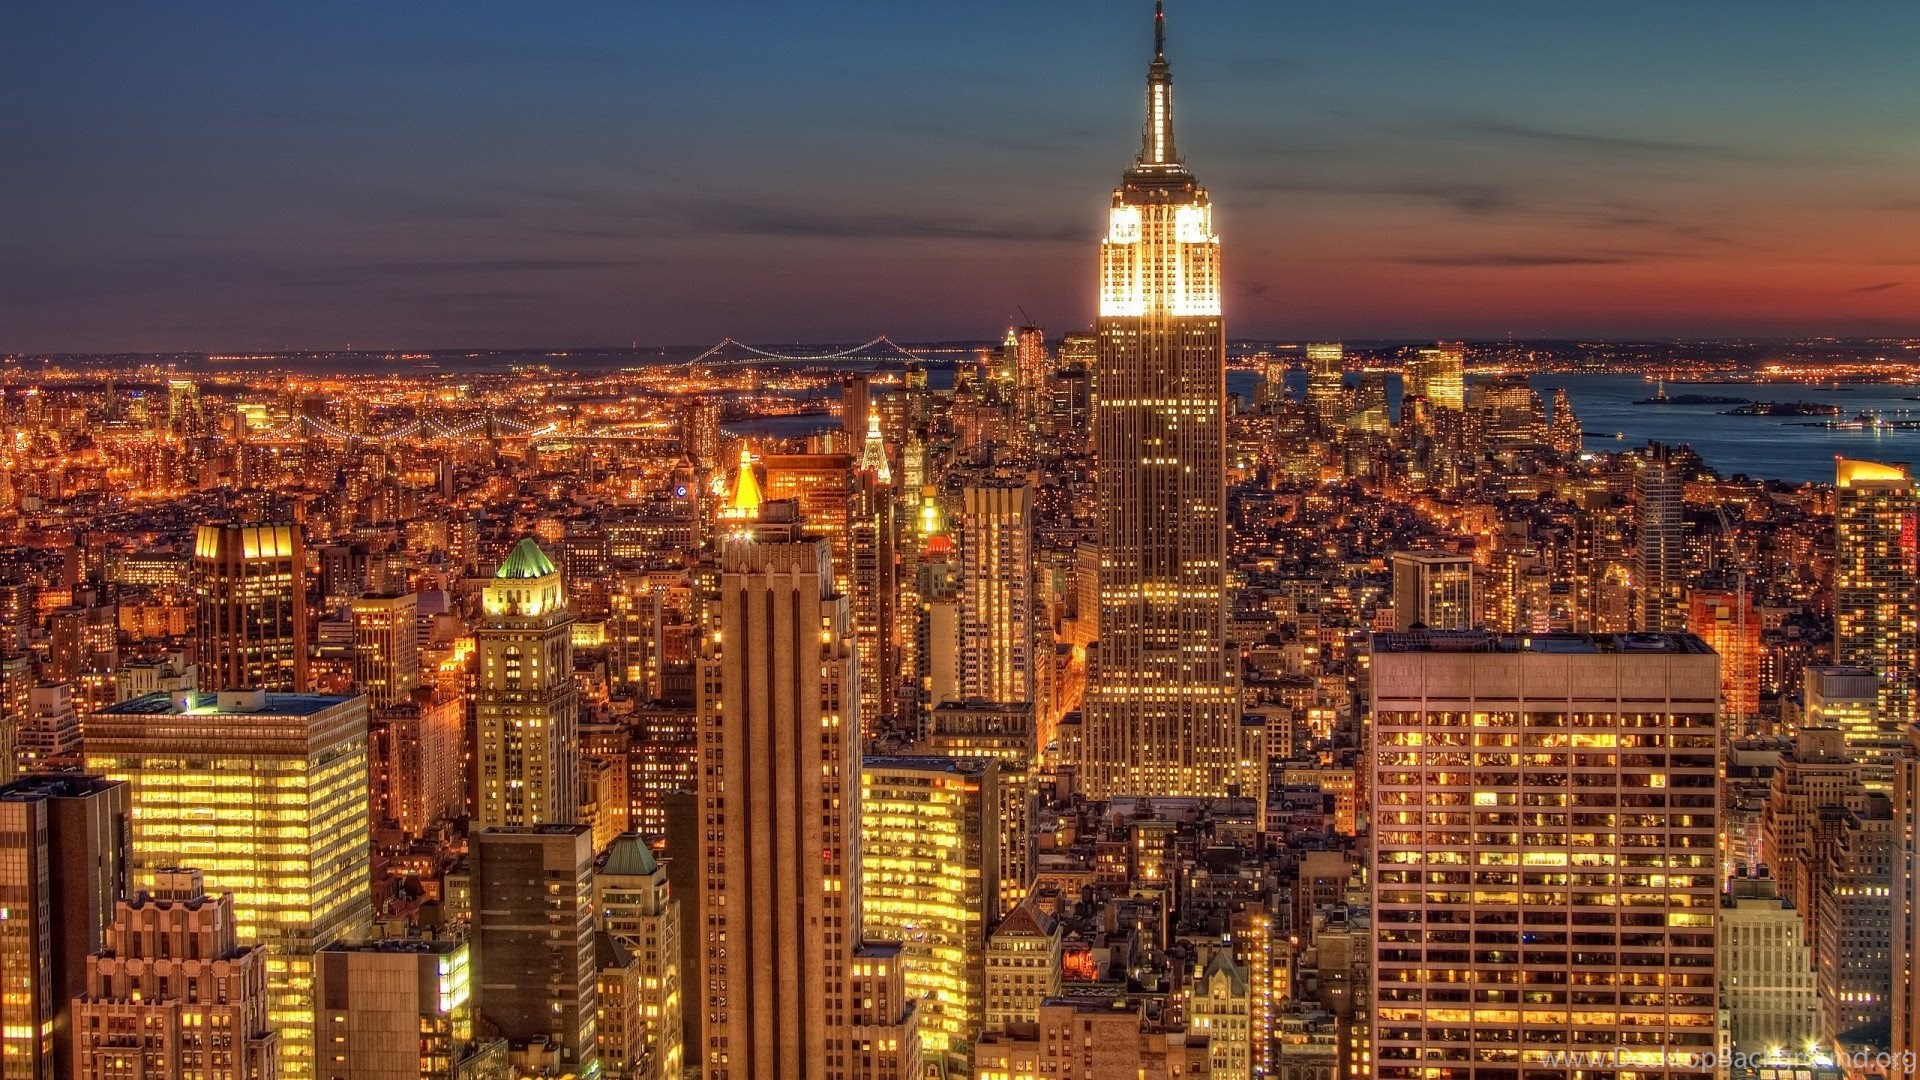 New York At Night Wallpapers Hd Resolution Wallpapers Desktop Background